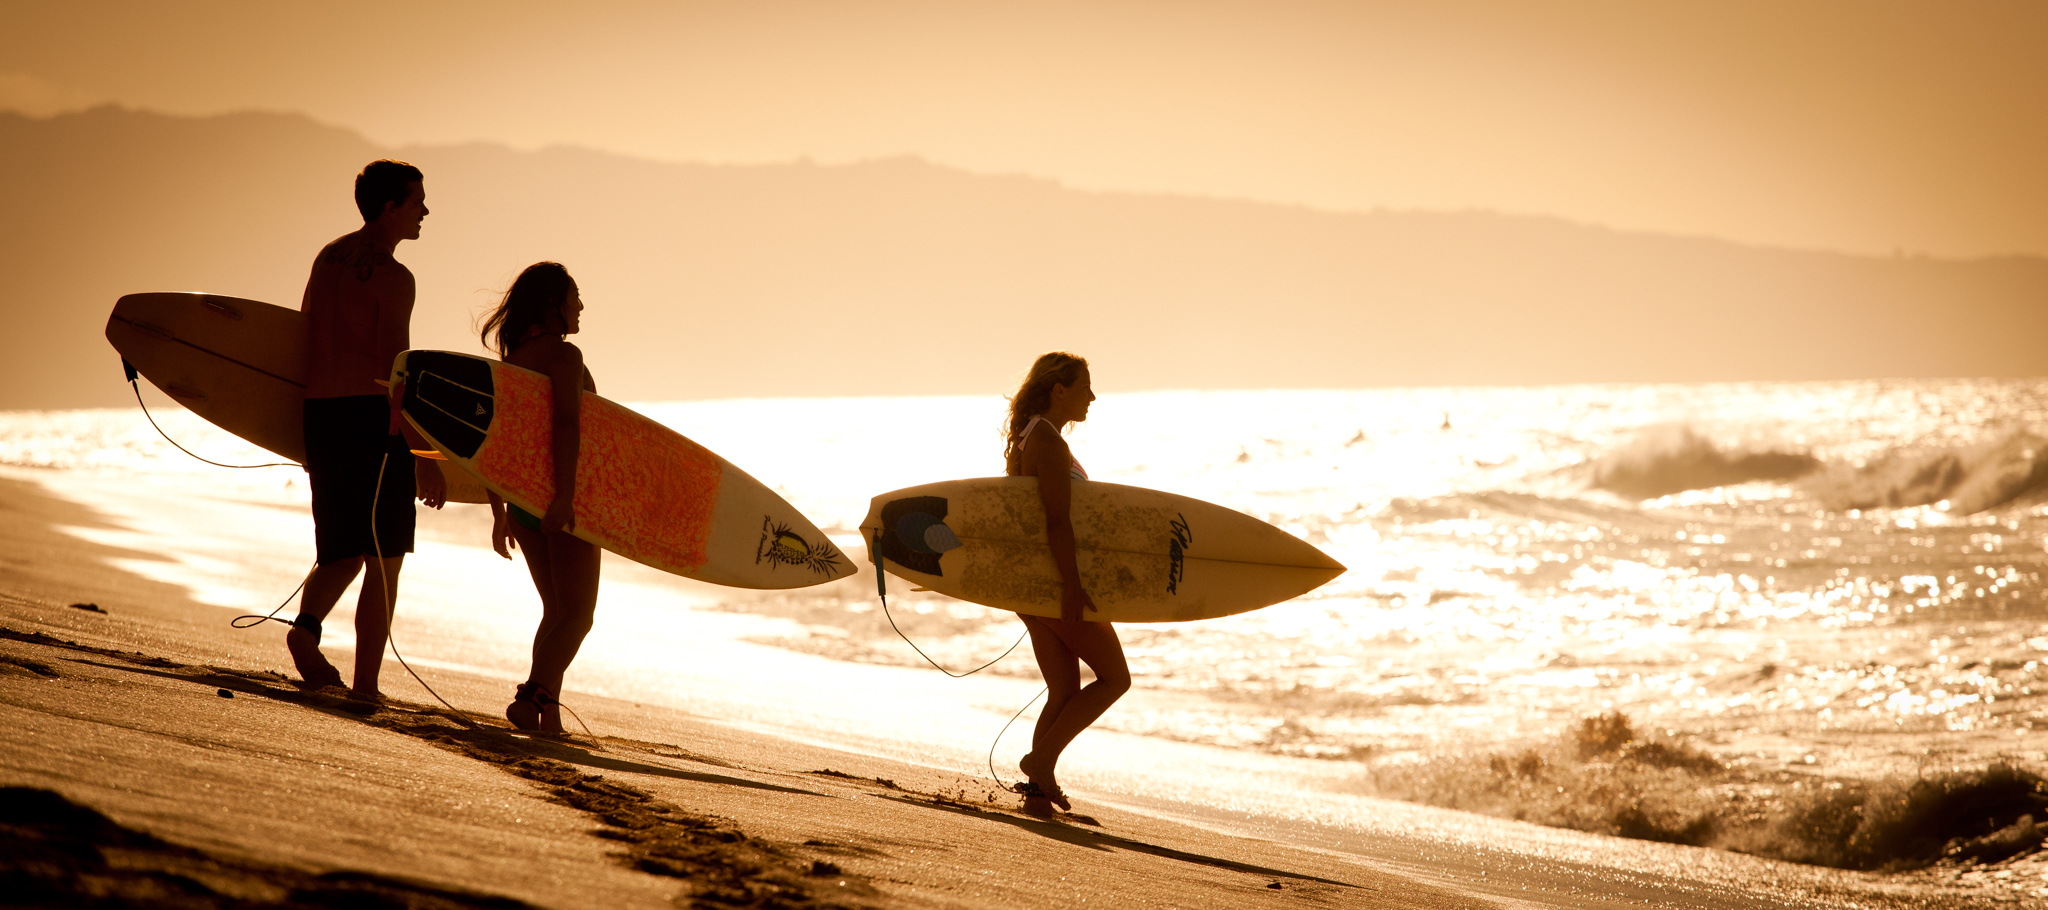 Surf Lifestyle Commercial Photographer